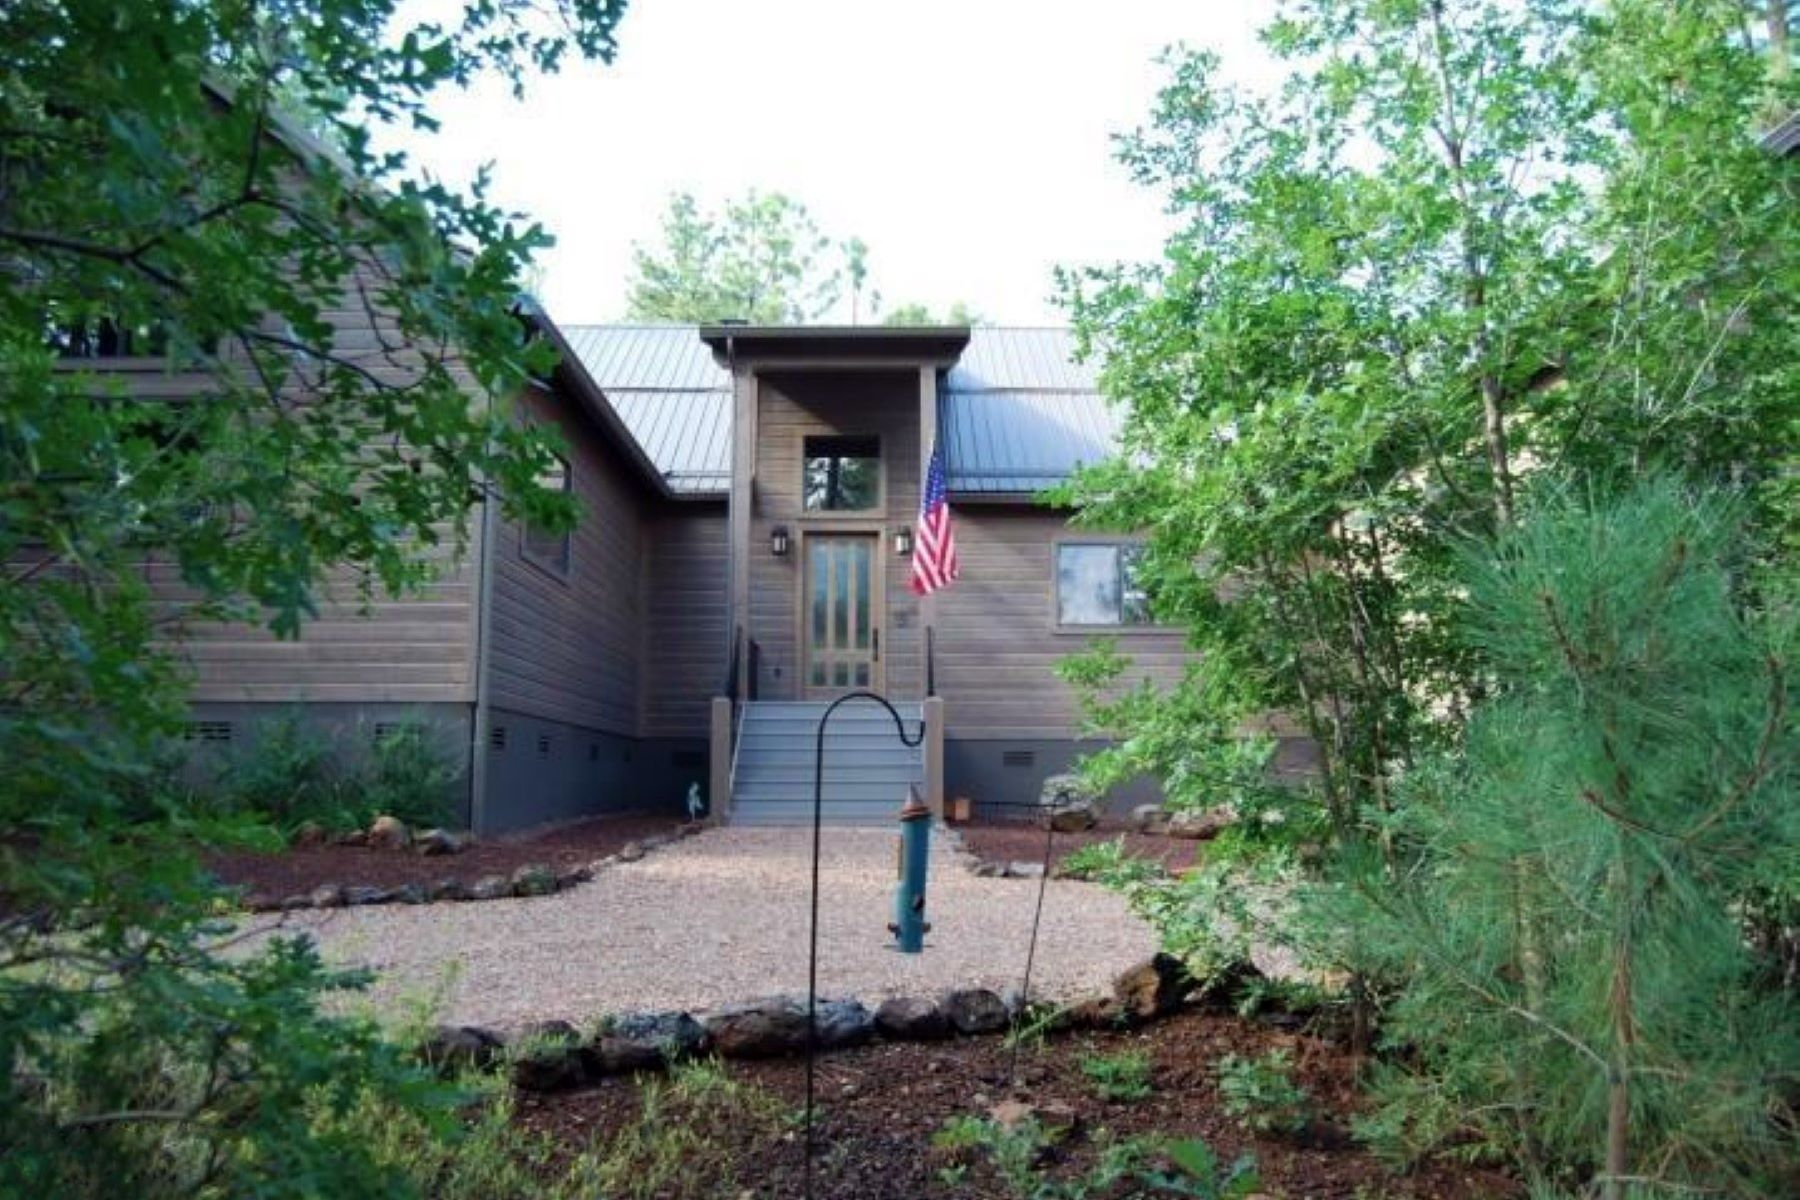 Single Family Home for Sale at White Mountain Summer Home on Golf Course 3197 Aspen Loop Pinetop, Arizona, 85935 United States